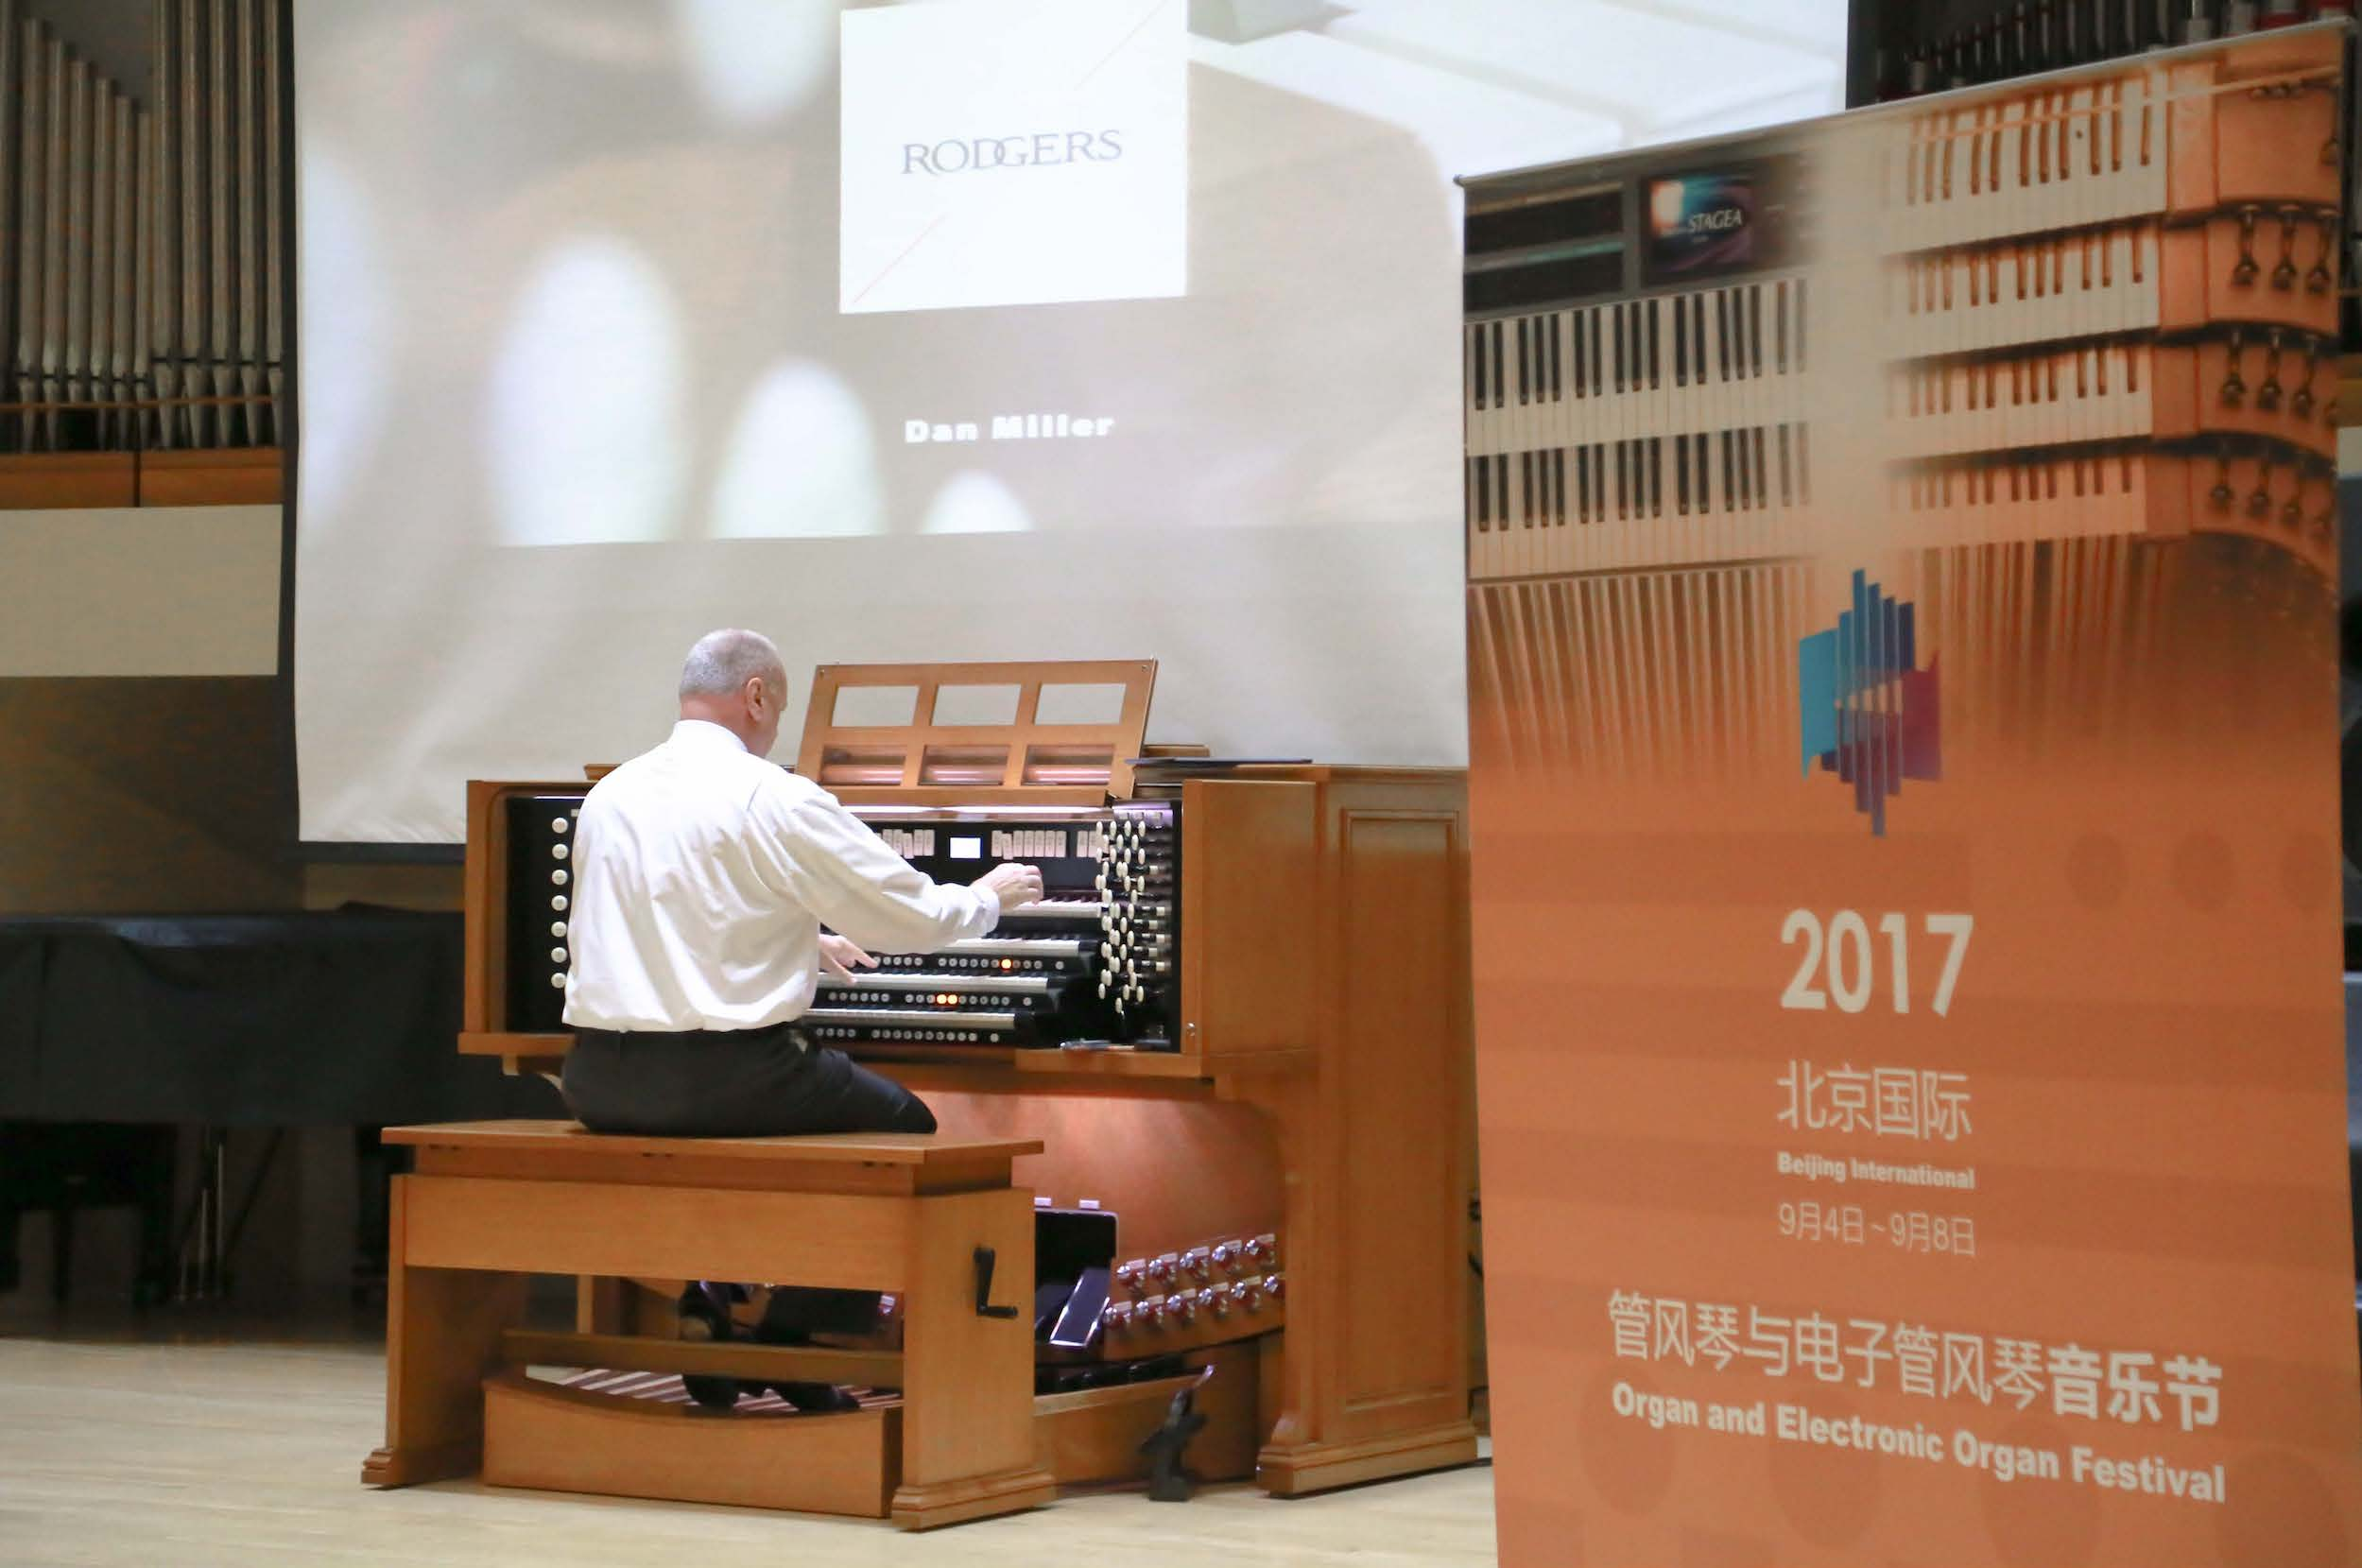 ... People Of China With The Opportunity To Appreciate The King Of All  Instruments, The Marvelous And Awe Inspiring Organ. Rodgers Has A Rich  History Of ...